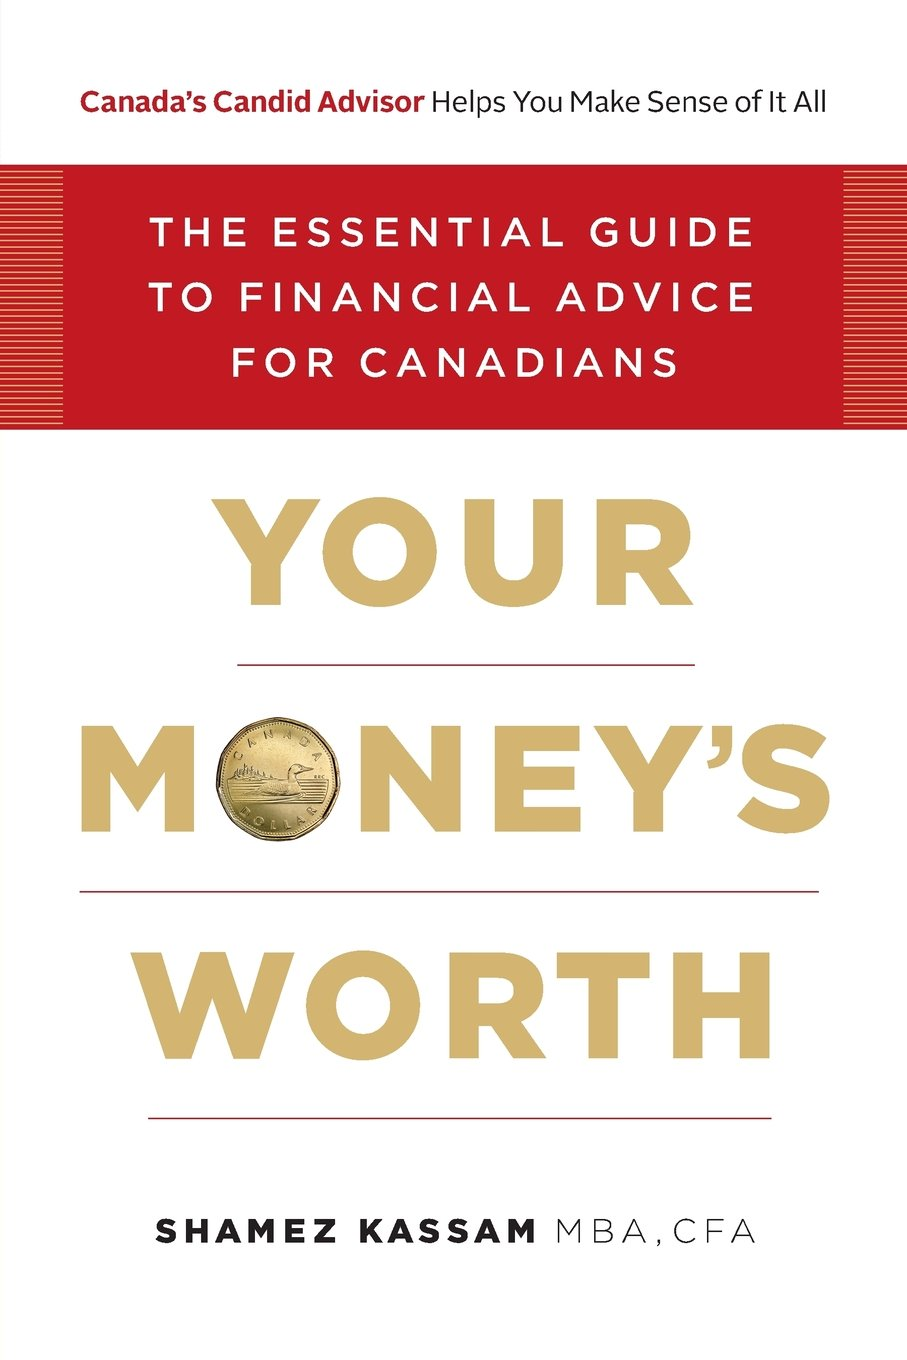 Your Money's Worth: The Essential Guide to Financial Advice for Canadians pdf